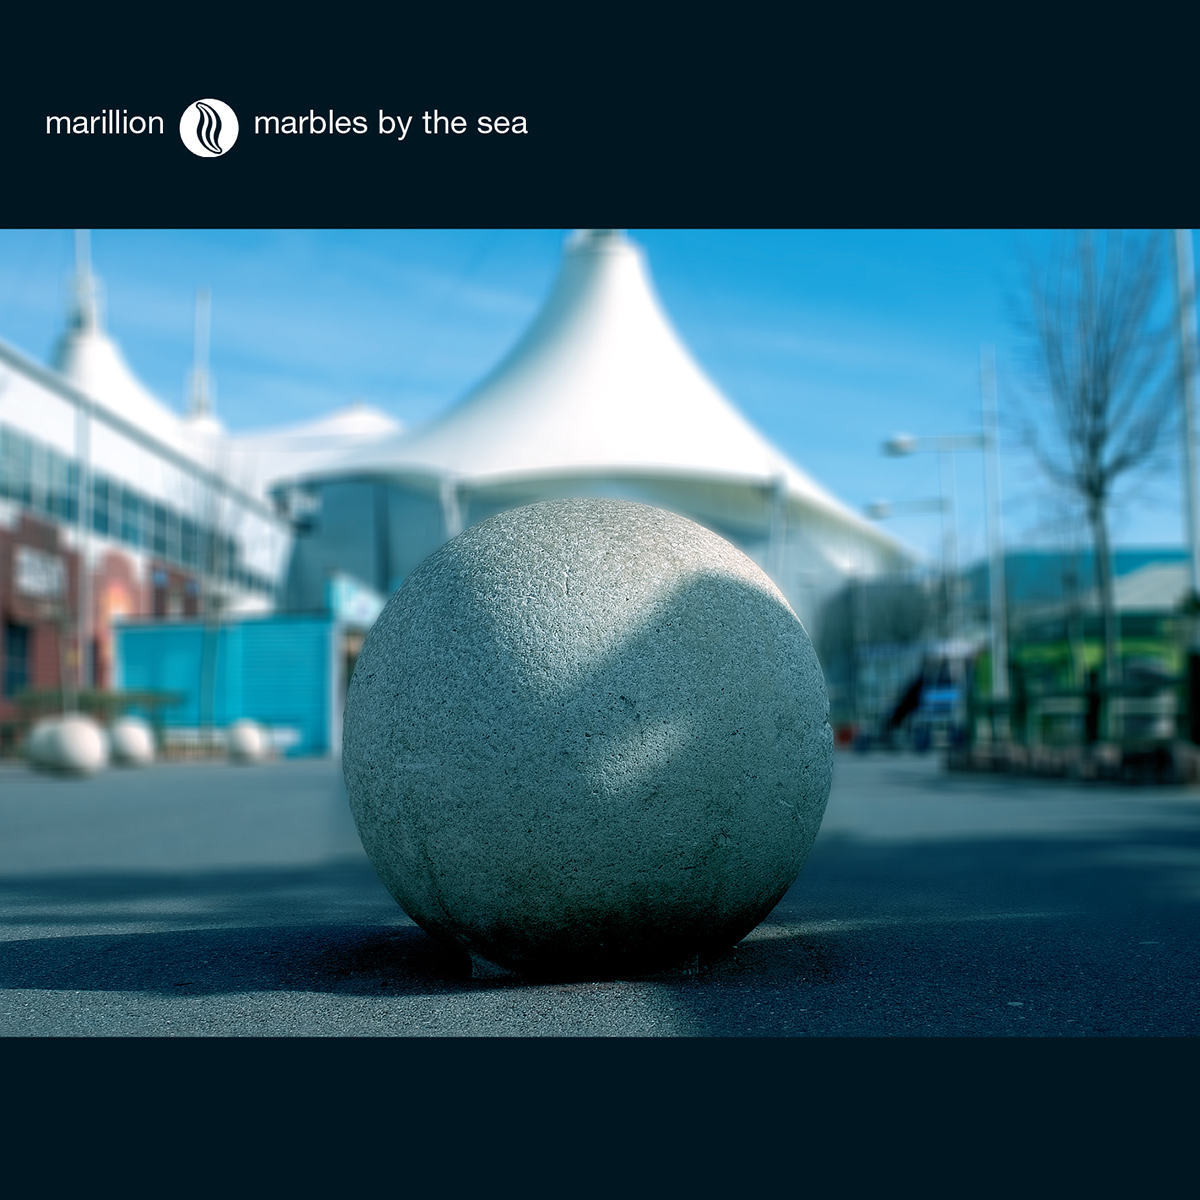 Marbles by the Sea 256 kbps Album Download